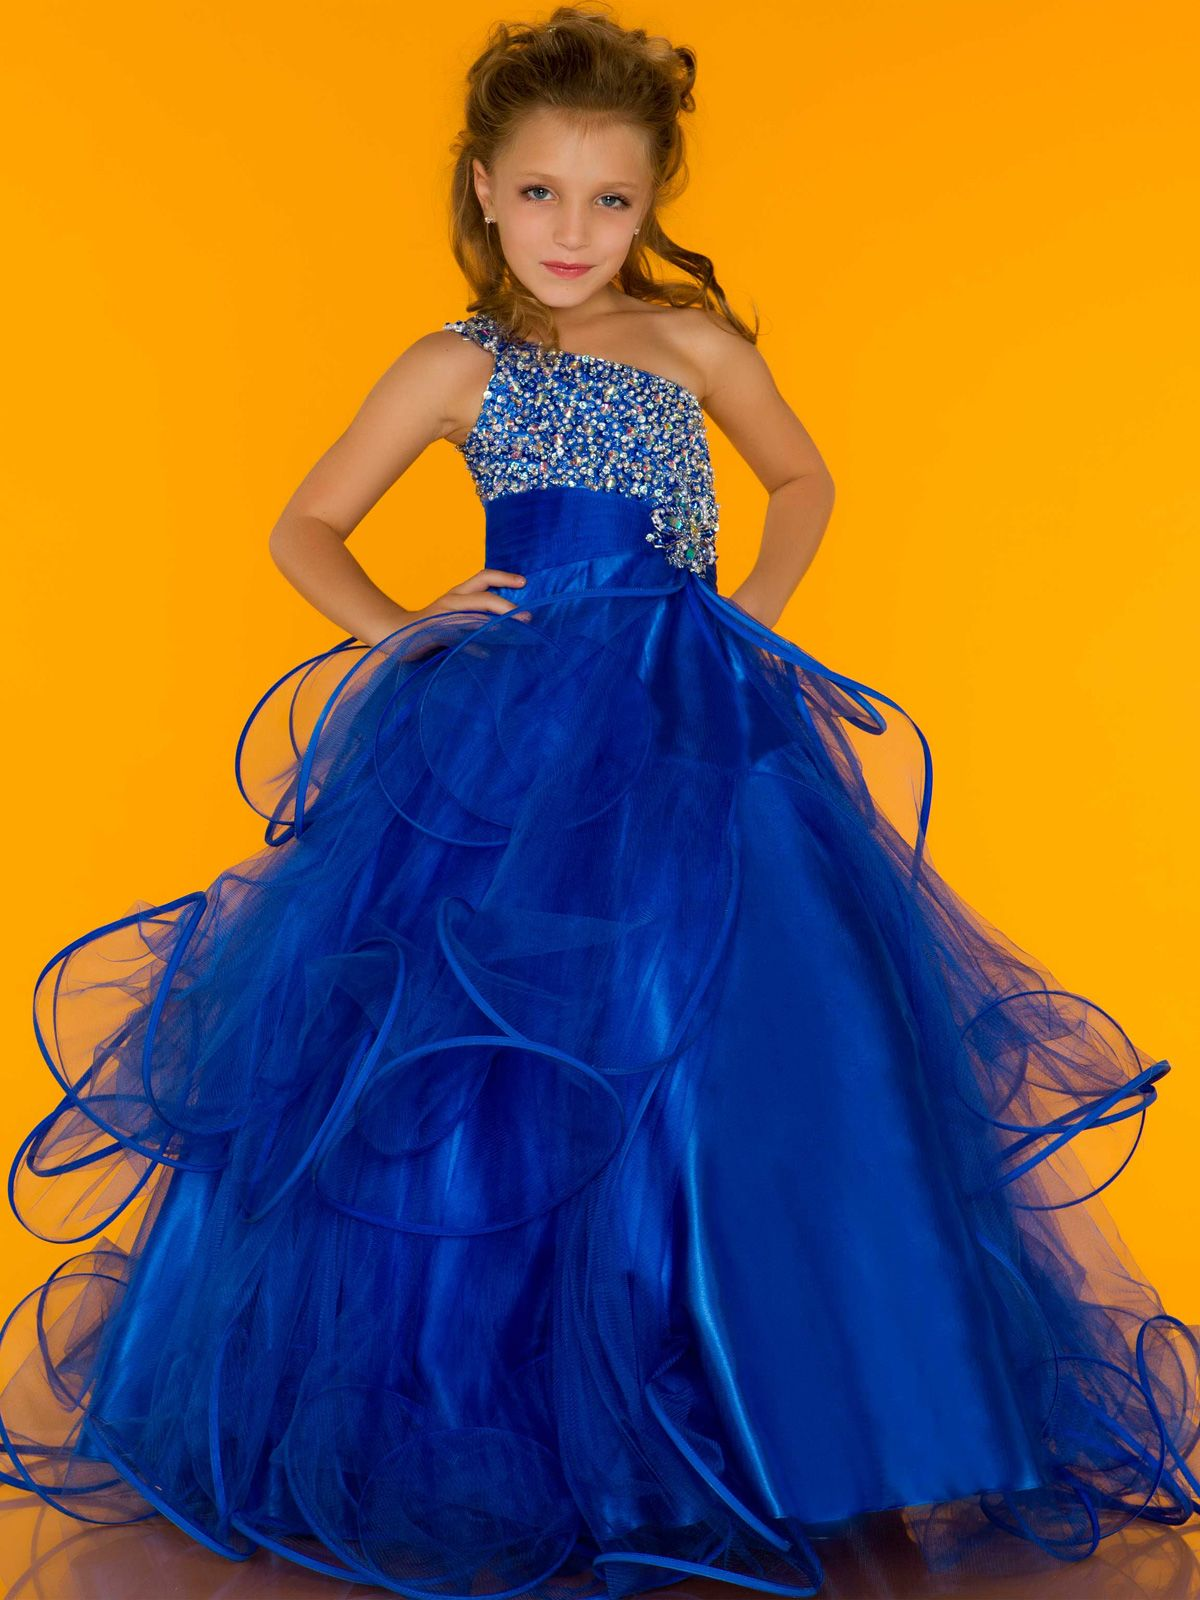 Give your little girl the 2013 hot one shoulder cute little girl's pageant  dresses rhinestone beads tulle flowers skirt in as a good gift and have her  shine ...